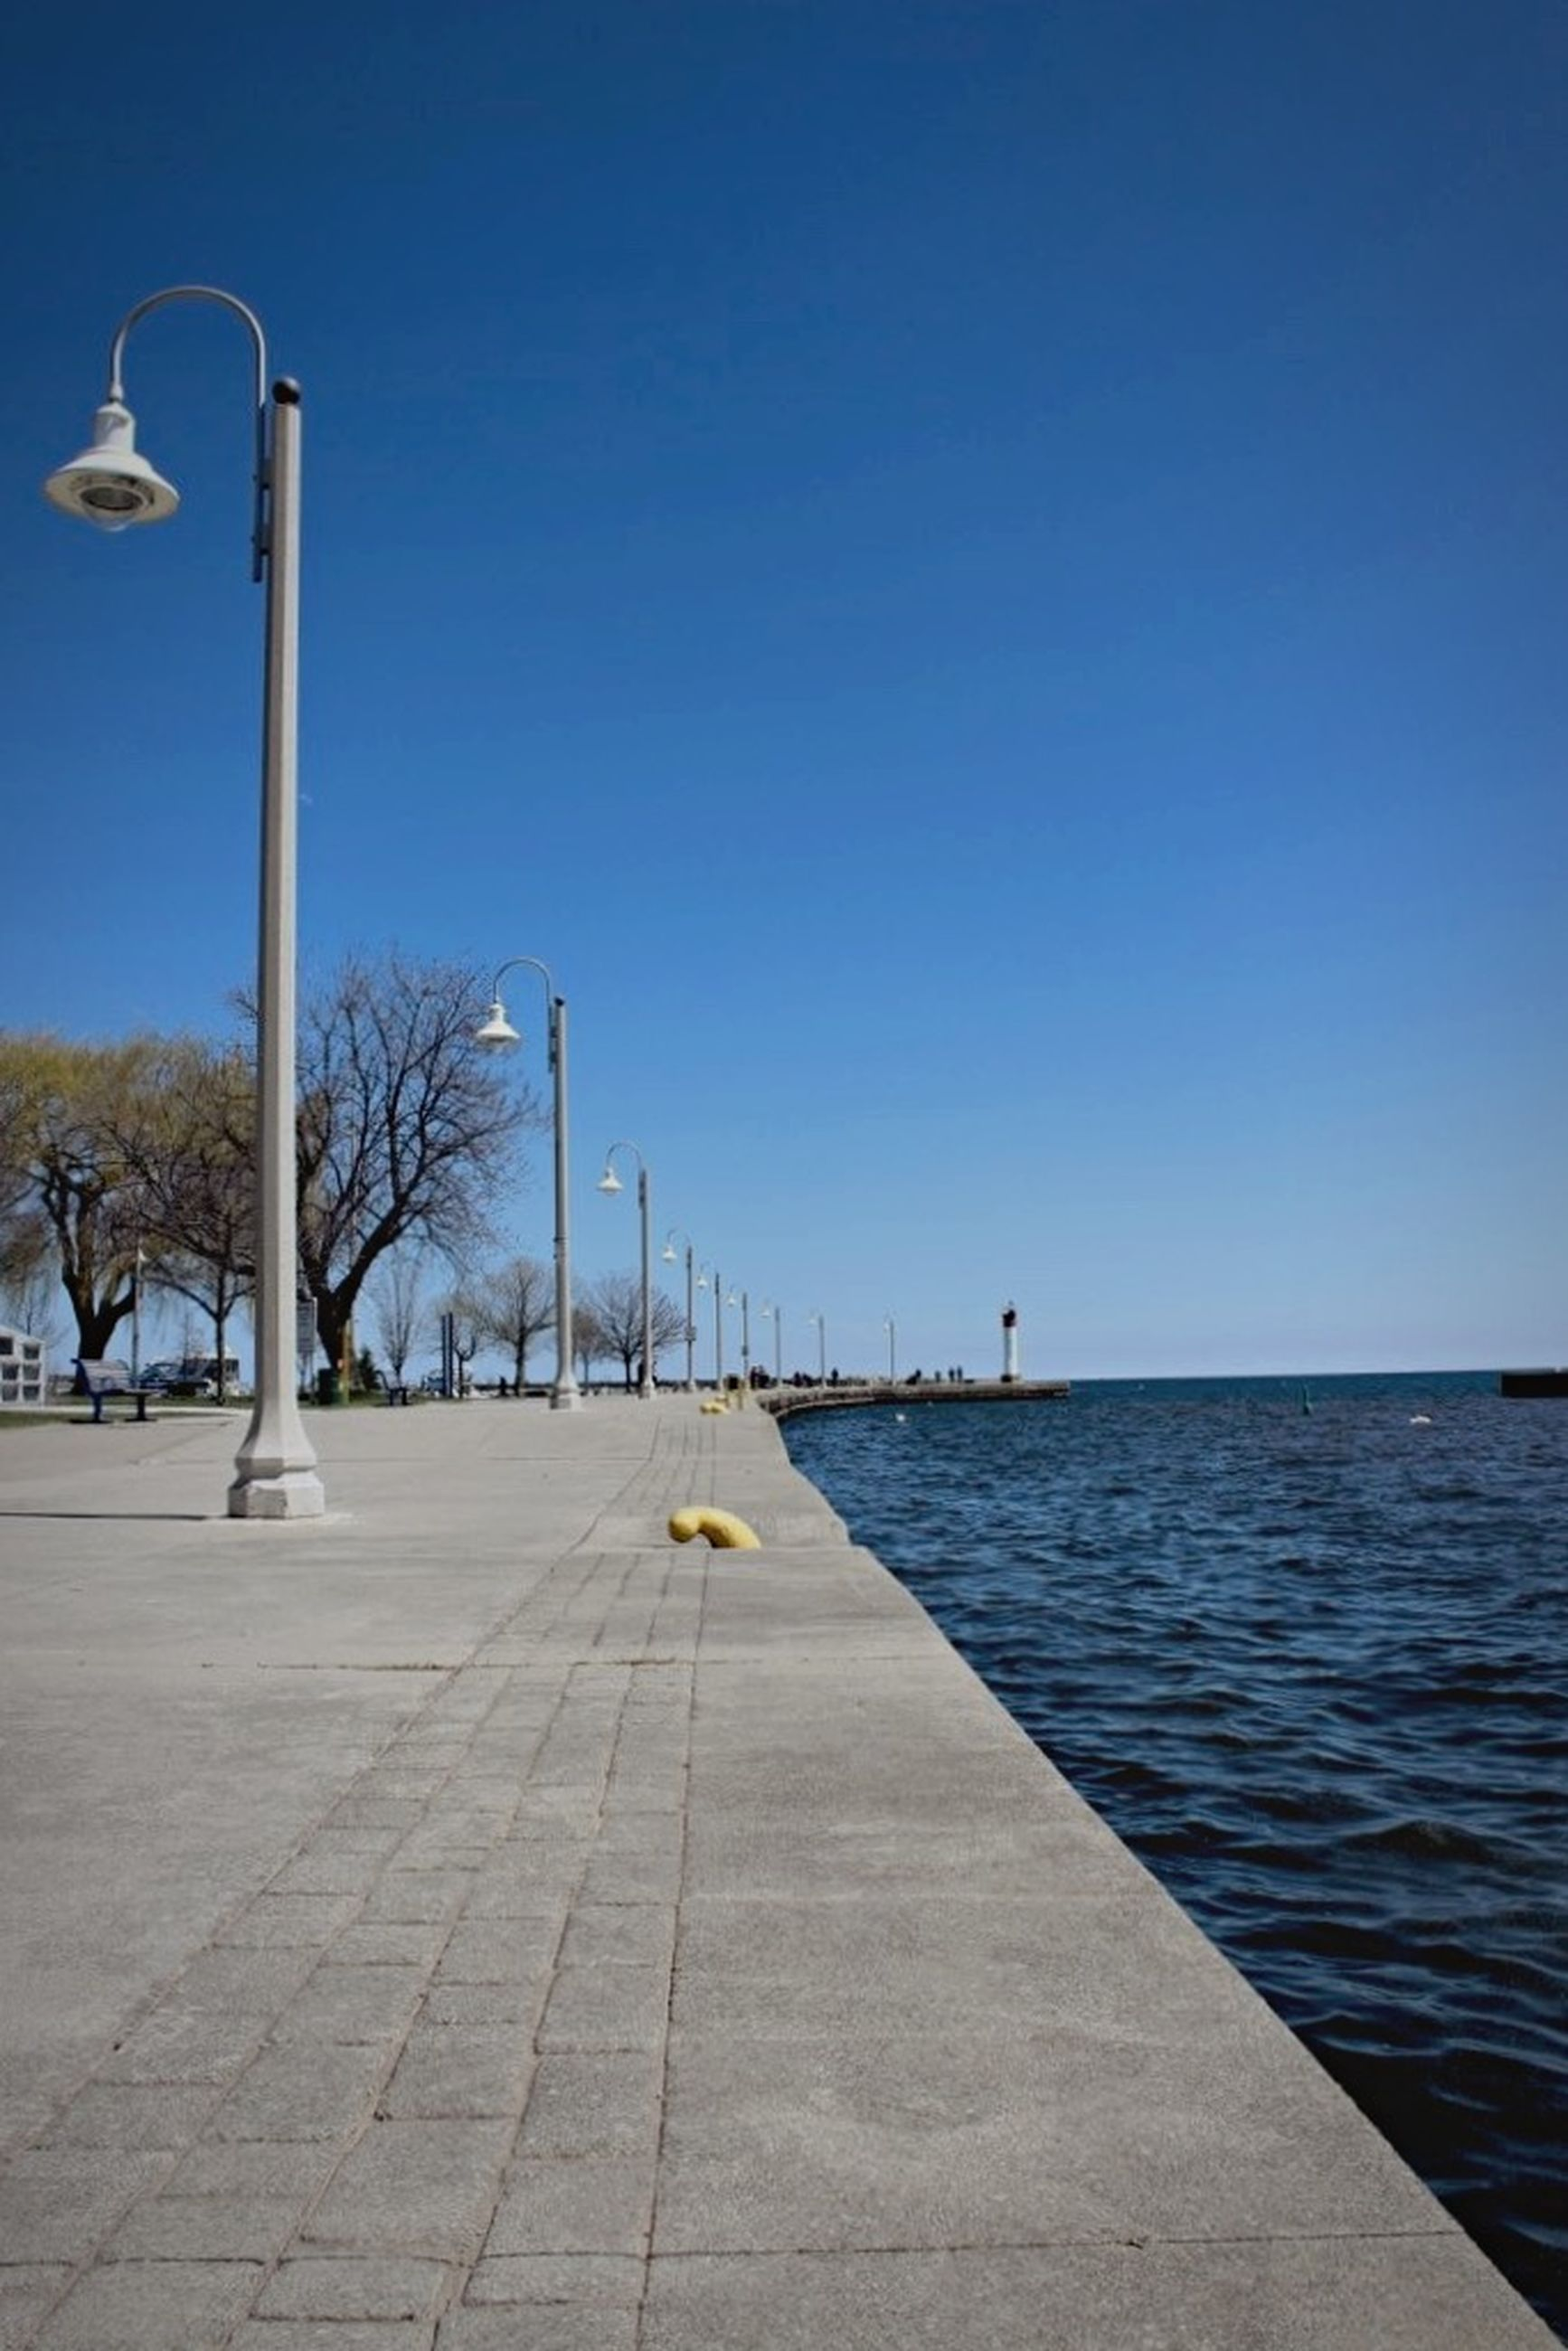 clear sky, blue, copy space, water, sea, street light, tranquility, tranquil scene, bird, nature, scenics, horizon over water, tree, beauty in nature, day, the way forward, outdoors, transportation, pier, sunlight